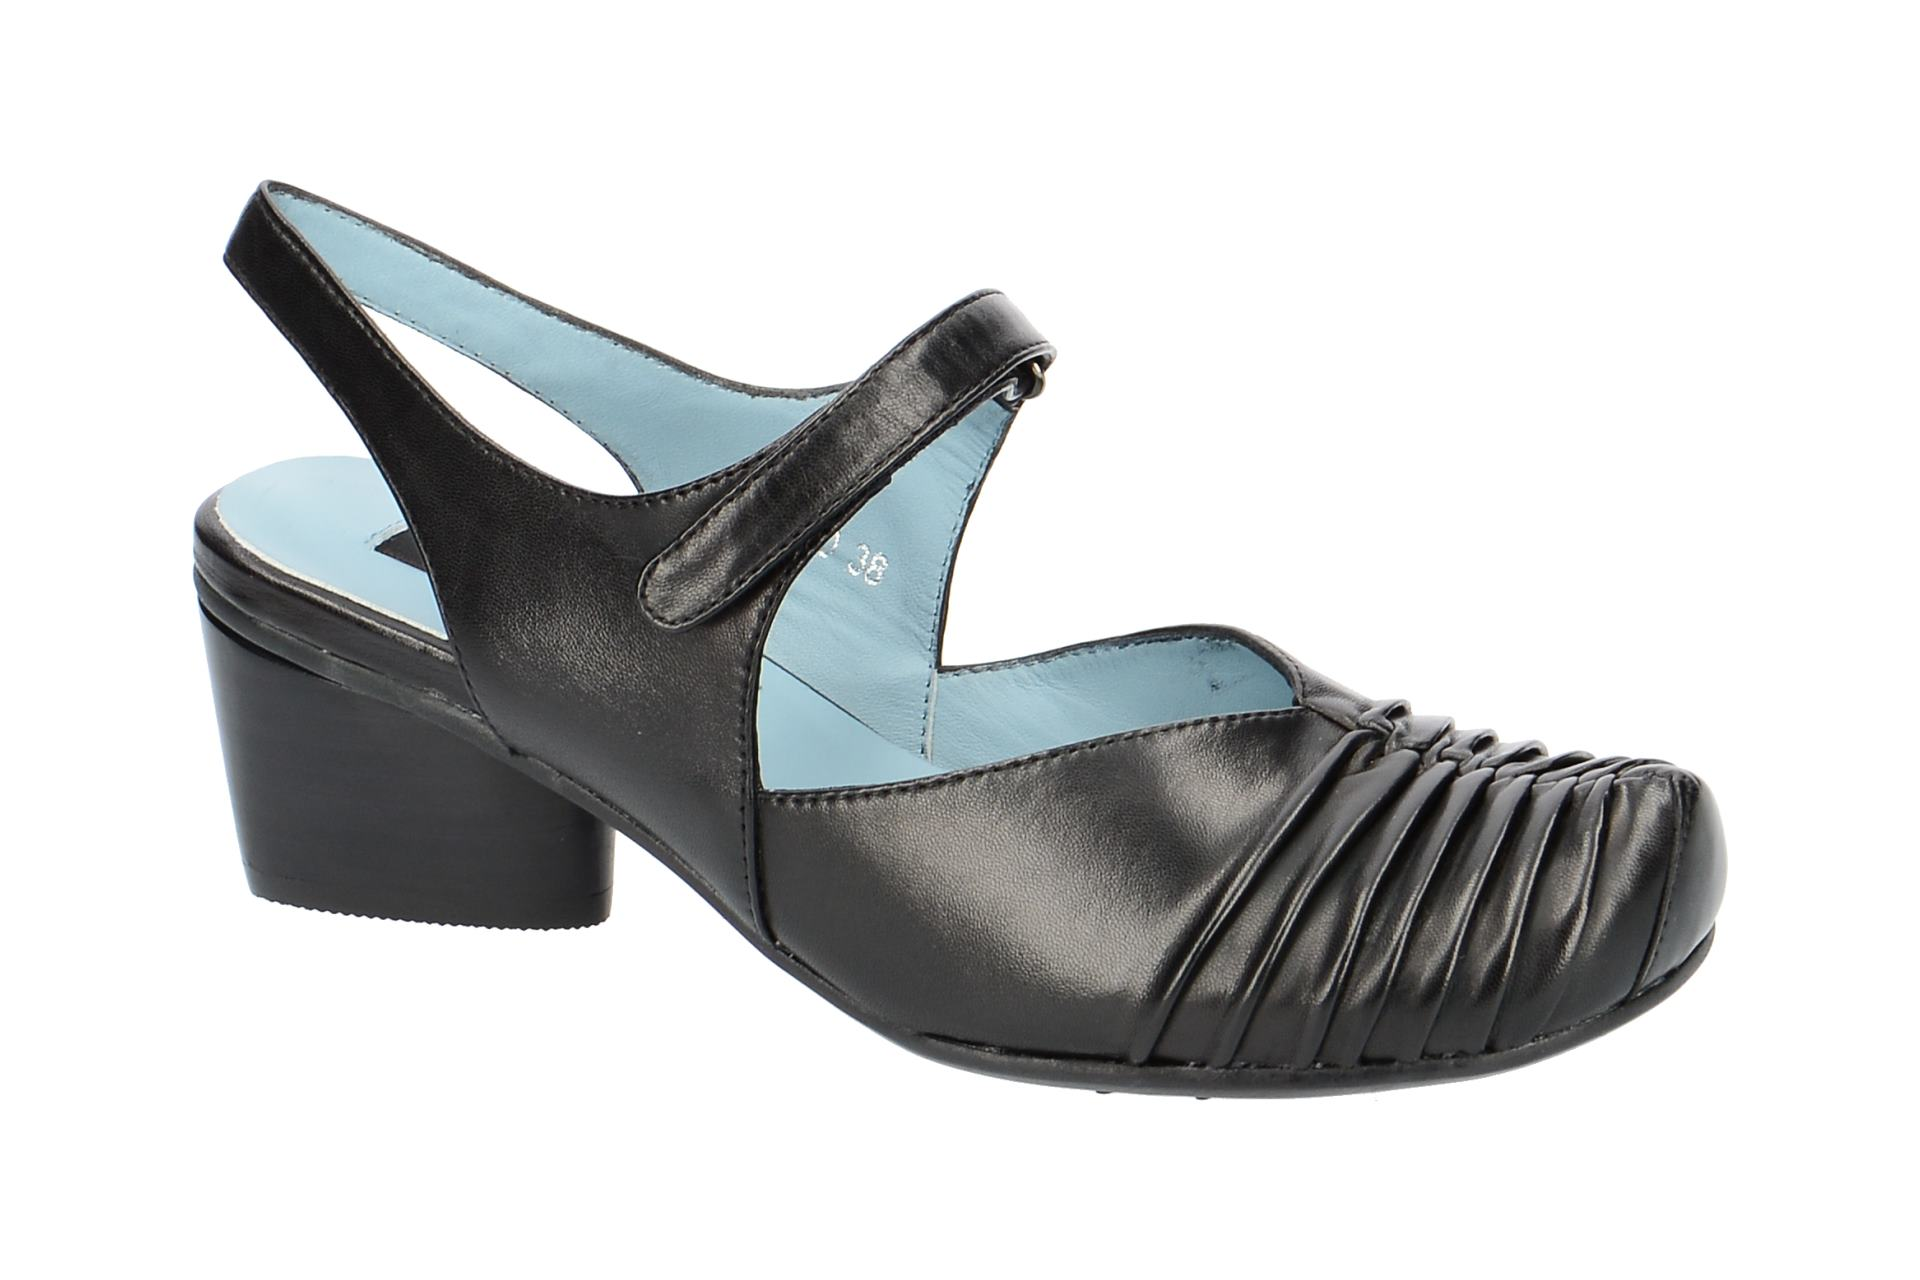 Everybody 28240 Sling Pumps für Damen in schwarz - 28240B5191 nero (Gr. 36, 41, 38.5, 37)